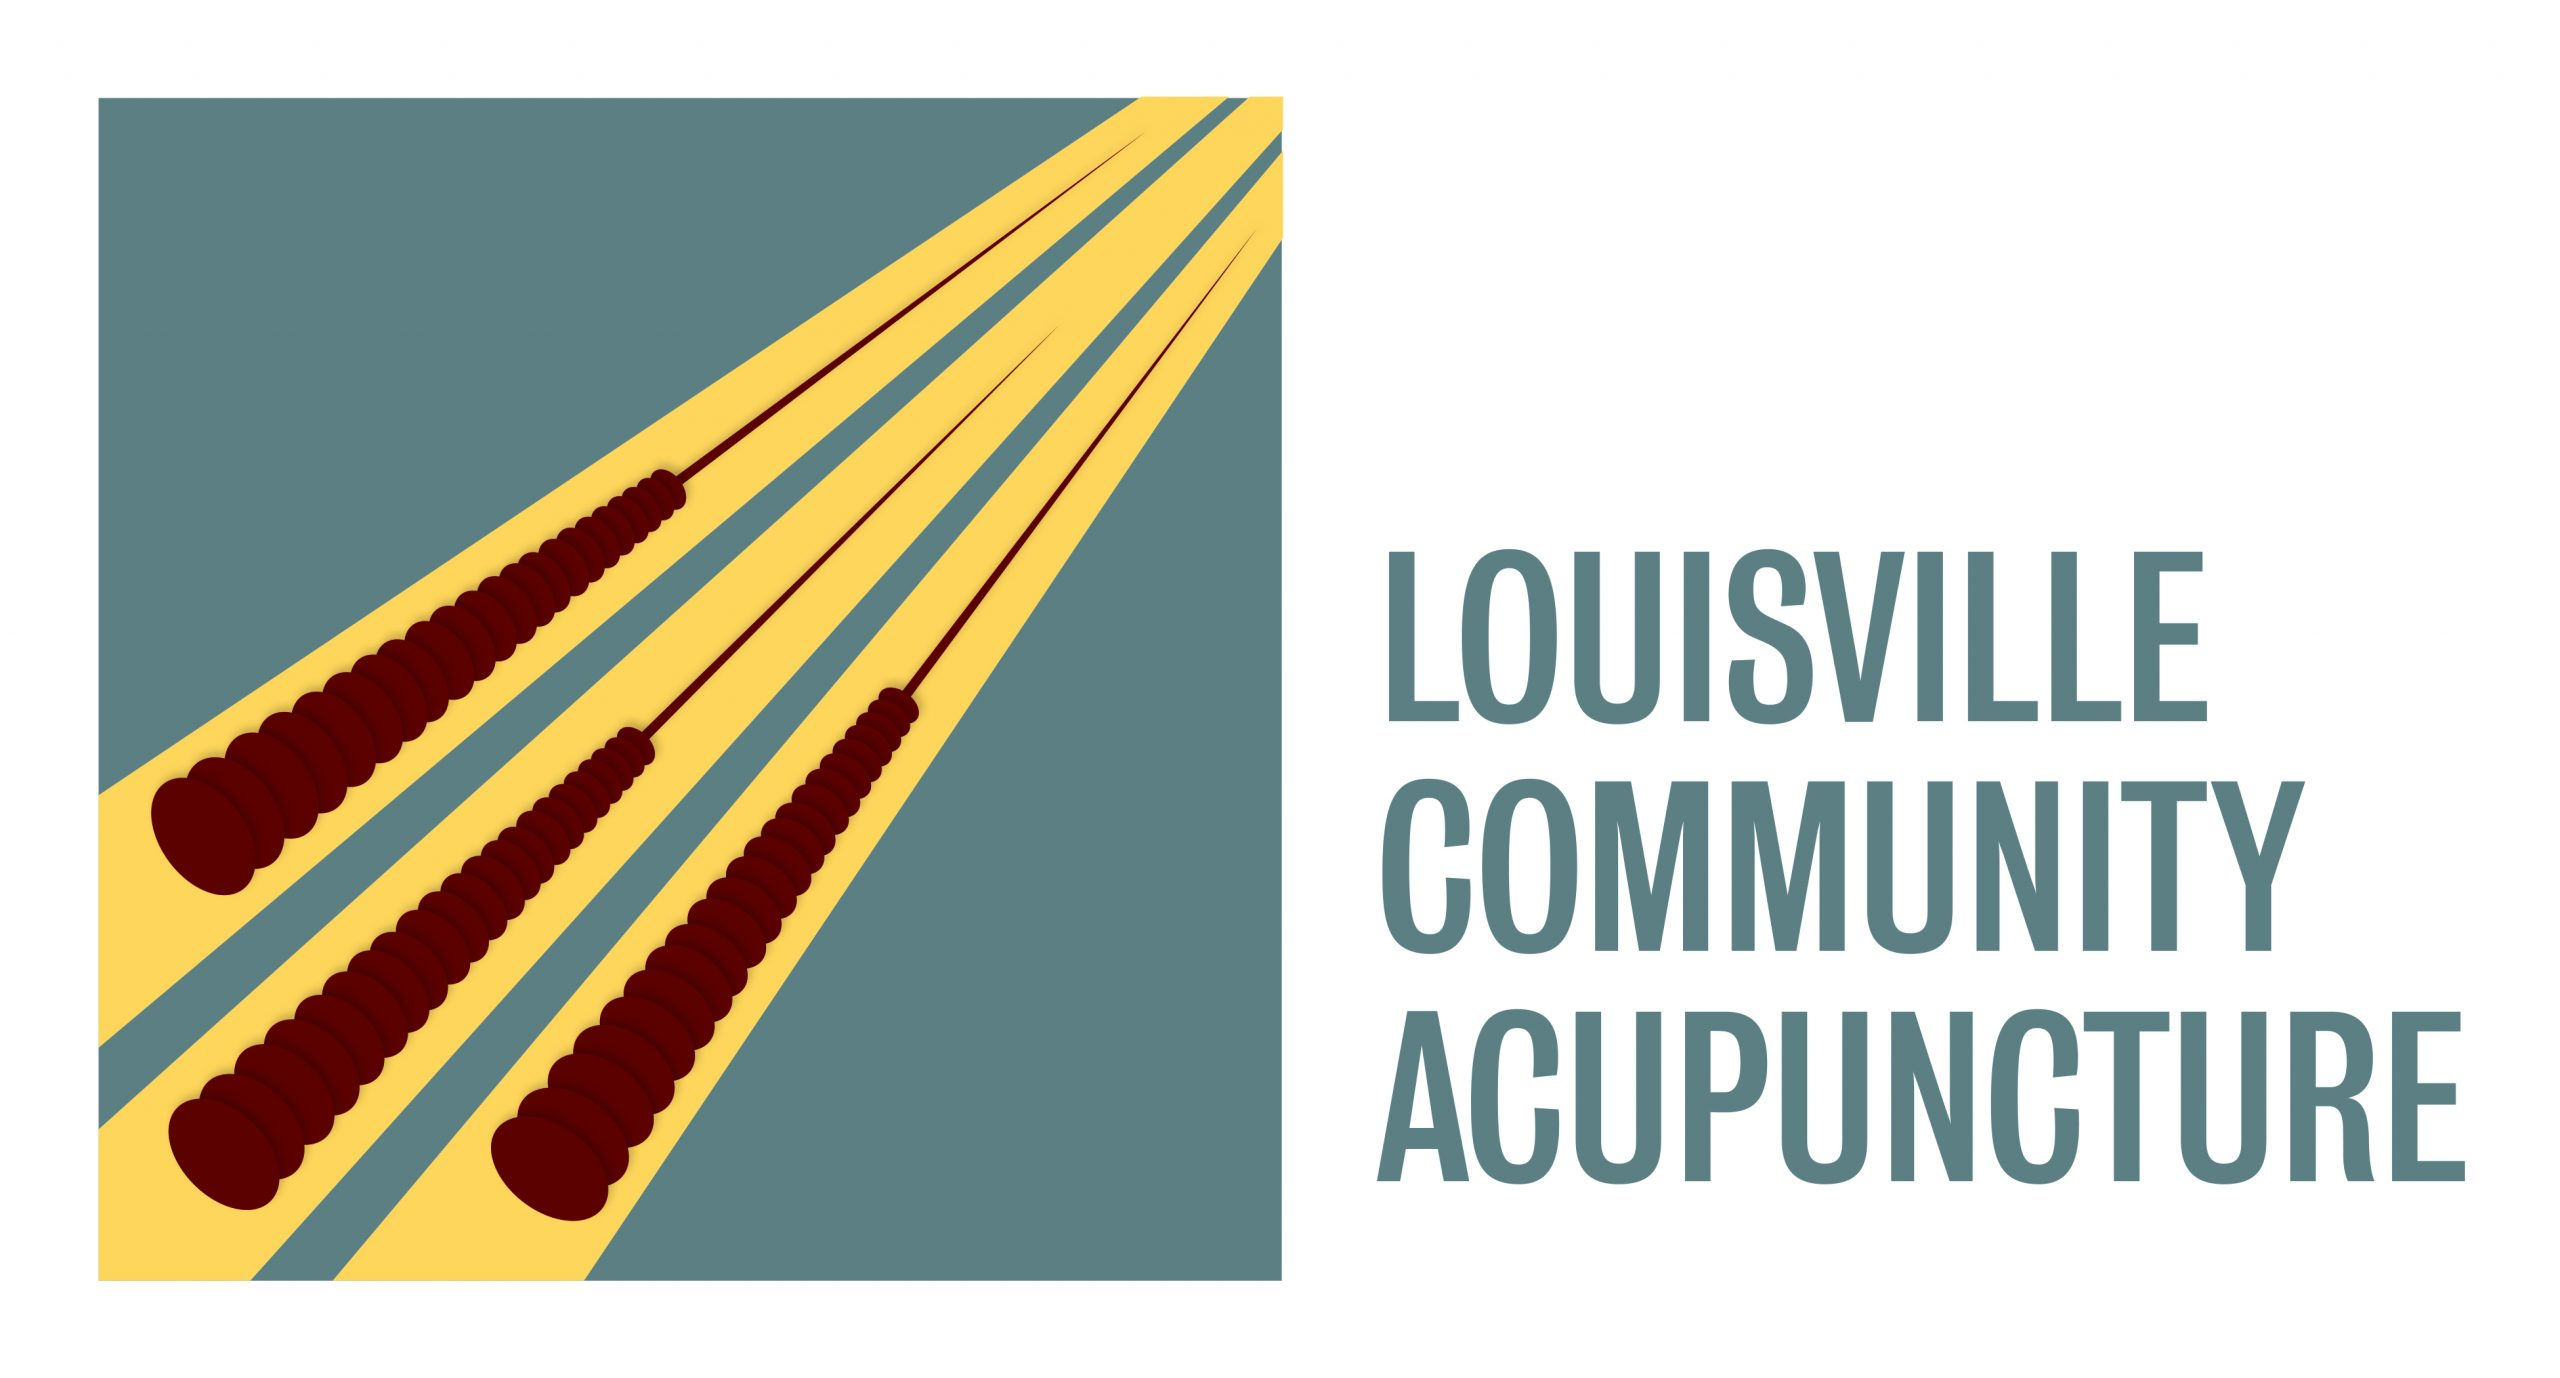 Affordable Acupuncture KY